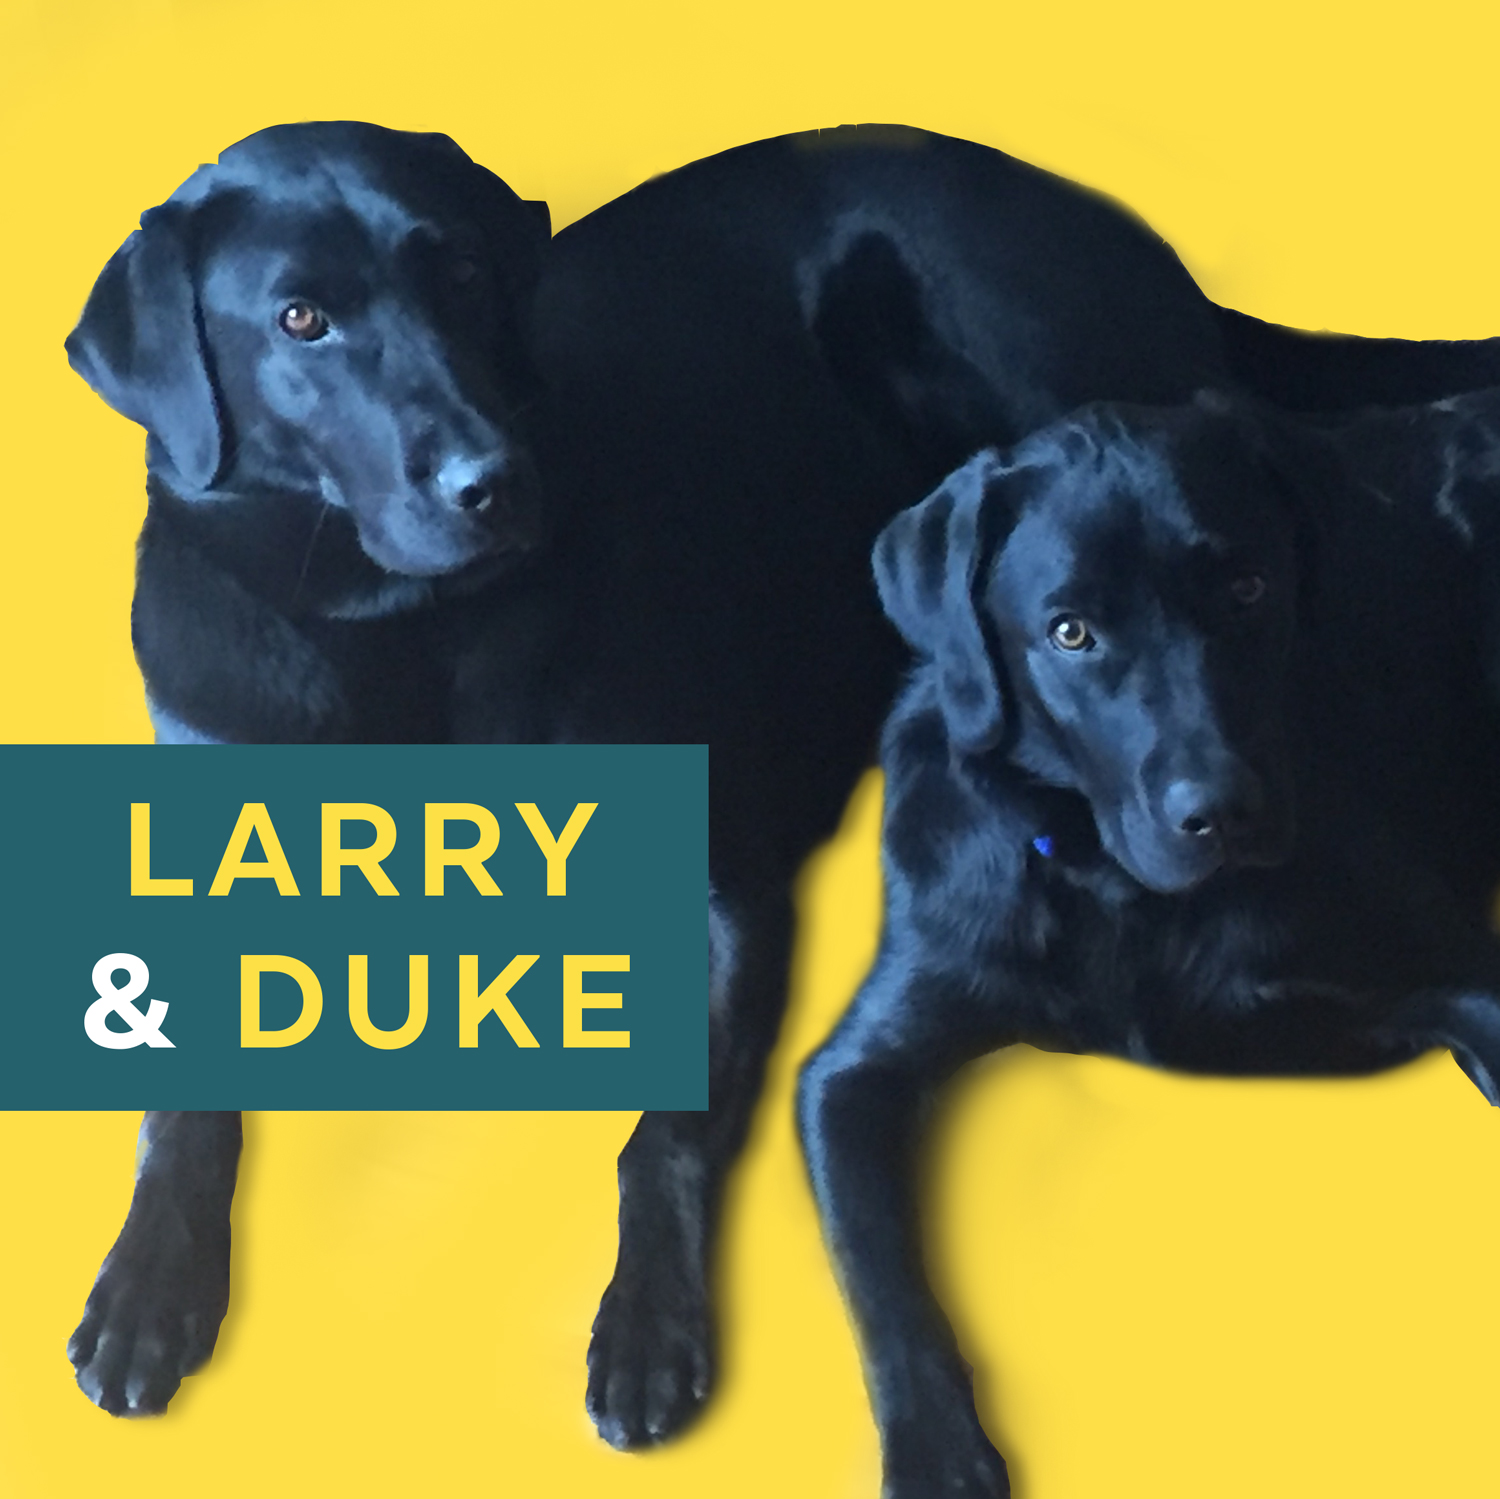 Larry & Duke